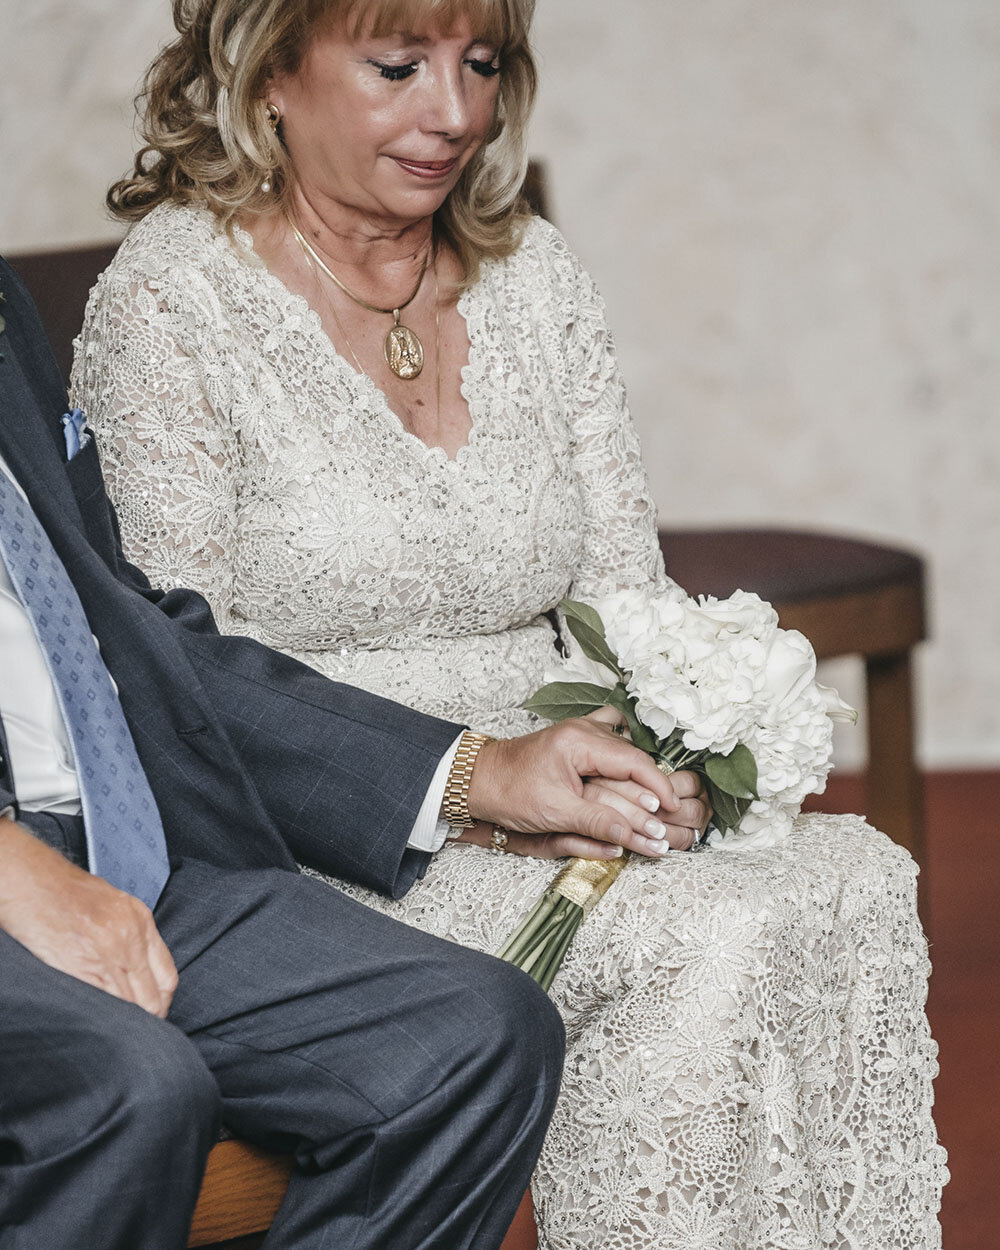 Palm Beach Gardens Floridawedding photography older couple - 13.jpg